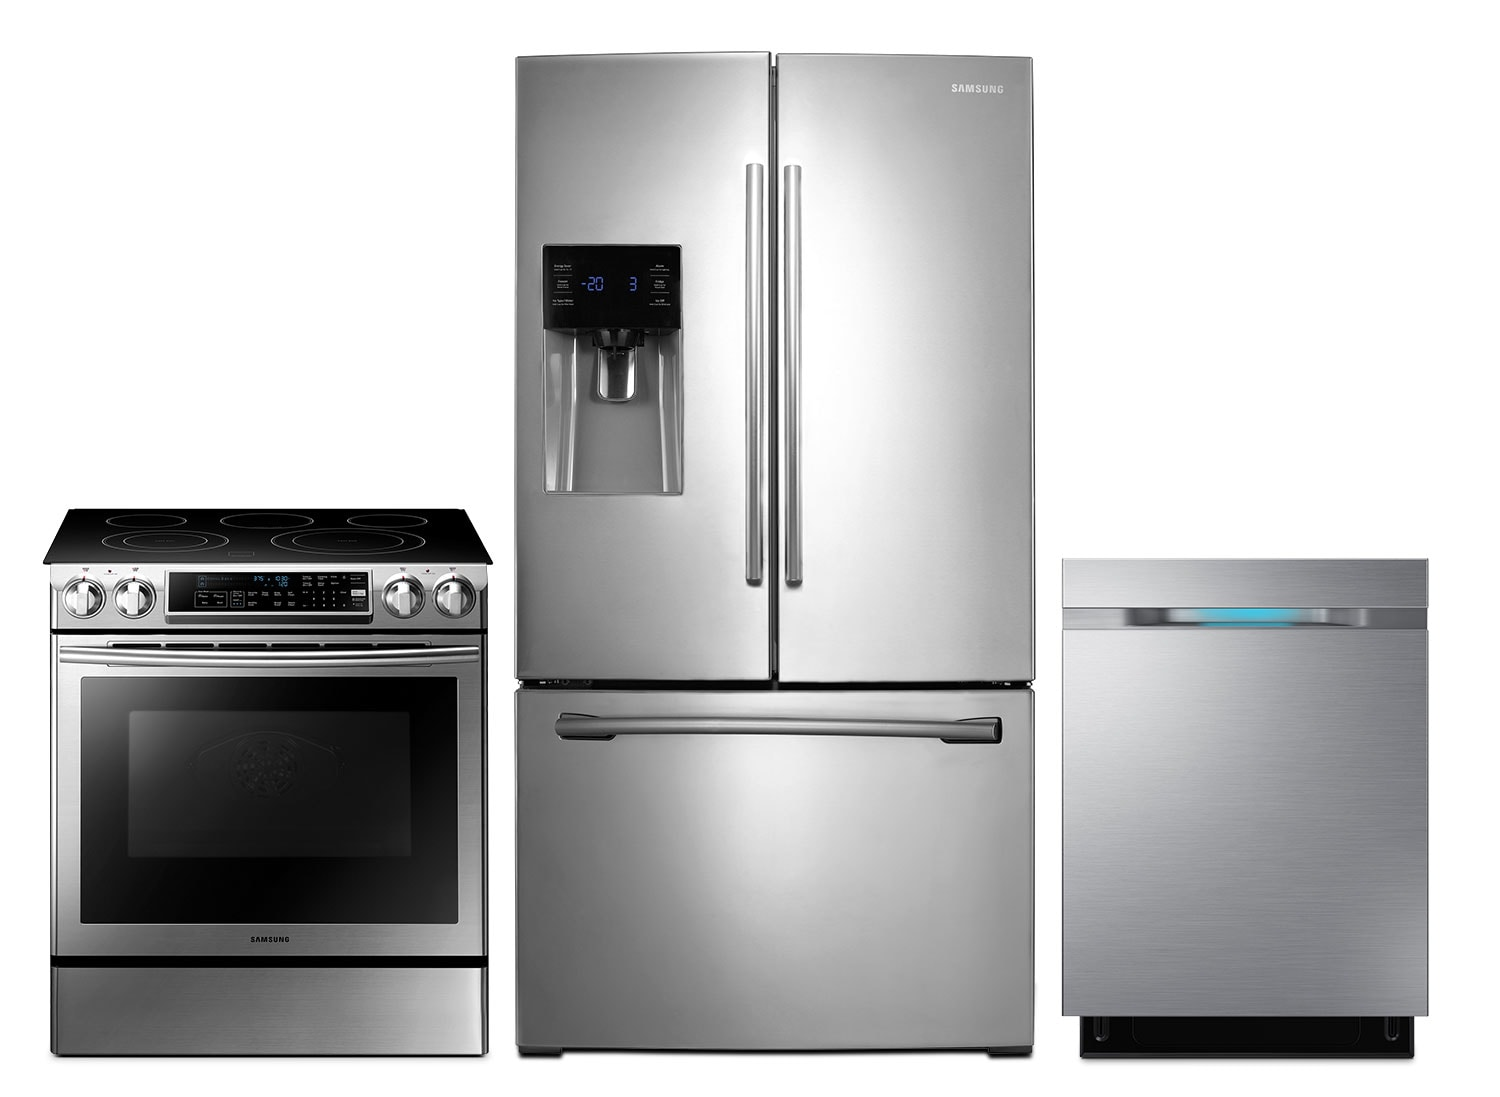 "Clean-Up - Samsung 26 Cu. Ft. Refrigerator, 5.8 Cu. Ft. Electric Range and 24"" Built-In Dishwasher"